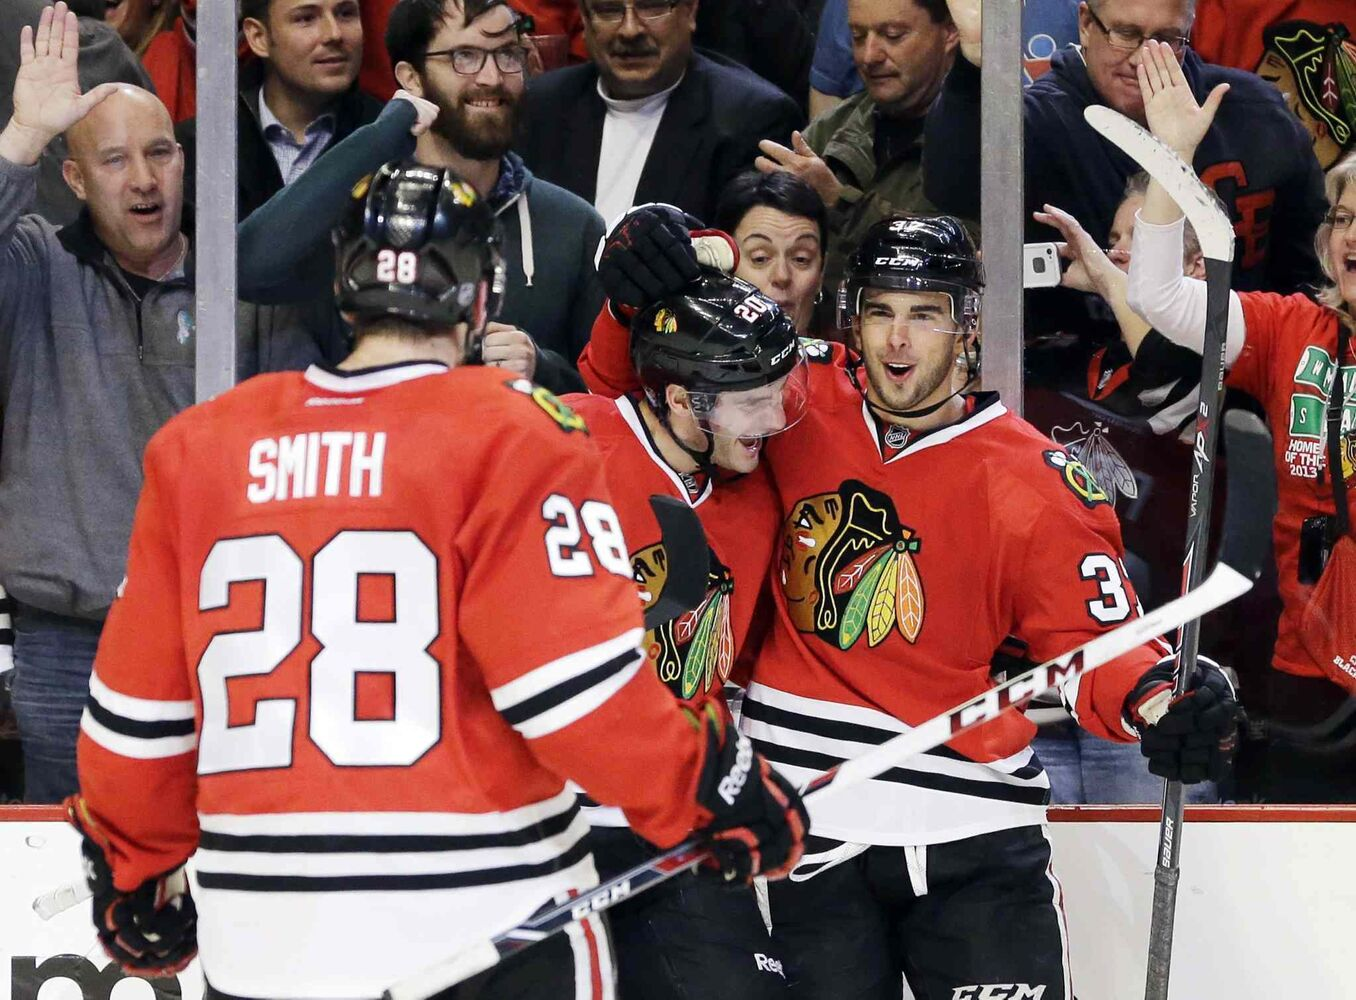 Chicago Blackhawks' Brandon Pirri (right) celebrates with Brandon Saad (centre) and Ben Smith (28) after Pirri scored a goal during the second period. (Nam Y. Huh / The Associated Press)